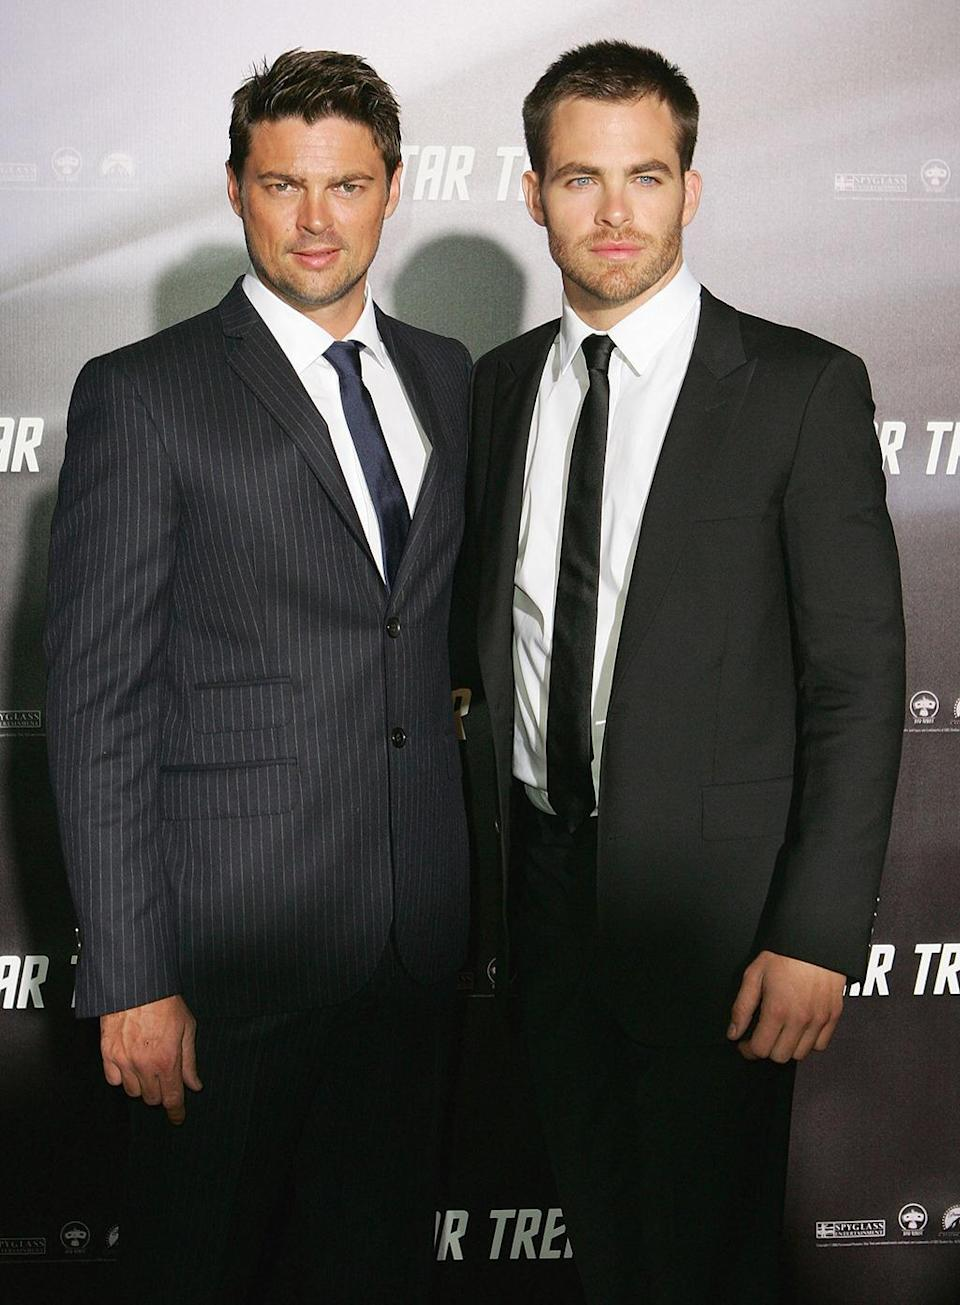 <p>Karl Urban (Dr. McCoy) and Chris Pine (James Kirk) arrive for the launch of J.J. Abrams' <i>Star Trek </i>reboot on April 7, 2009, in Sydney. <i>(Photo: Sergio Dionisio/Getty Images)</i></p>